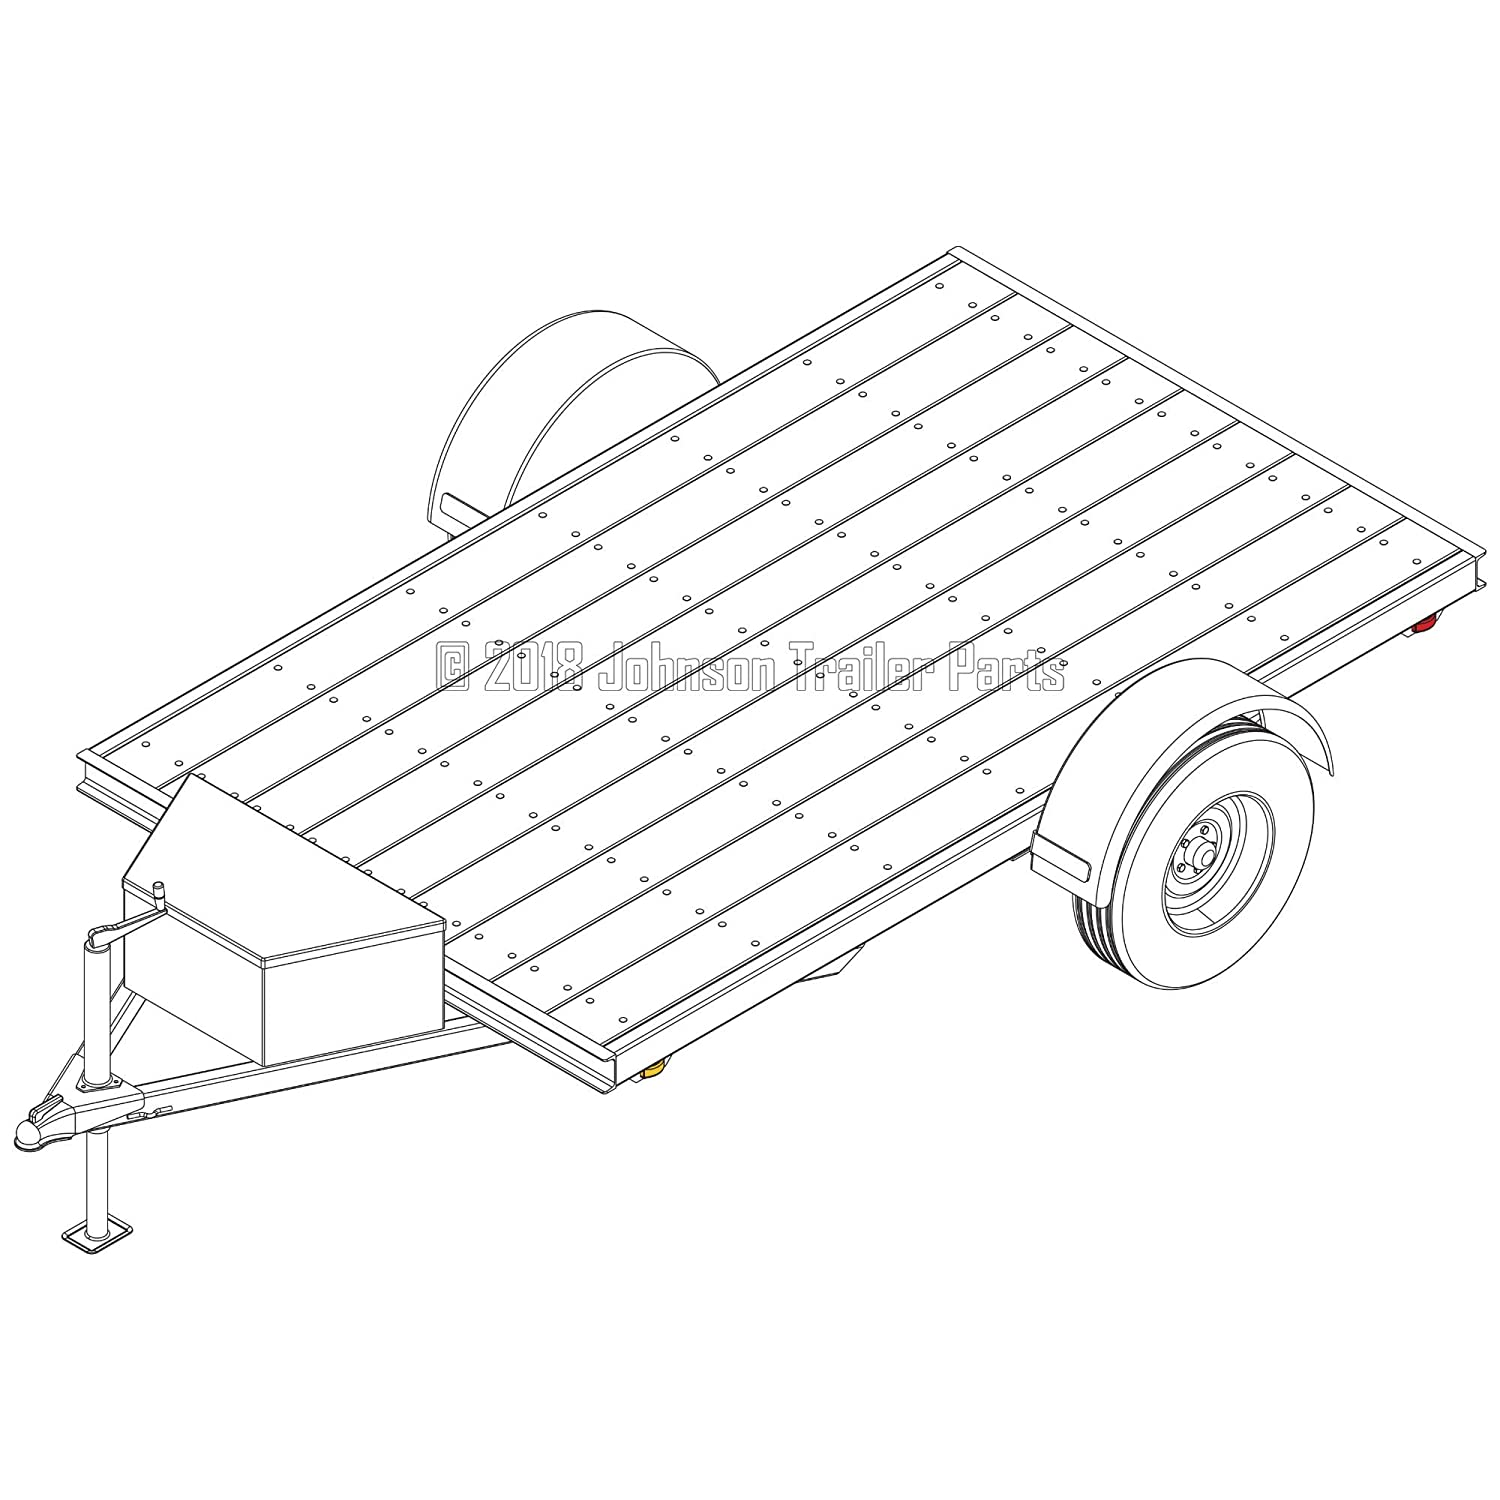 6/′ x 10/′ Utility Trailer Plans Trailer Blueprints Model U72-120-35J 3,500 lb Capacity